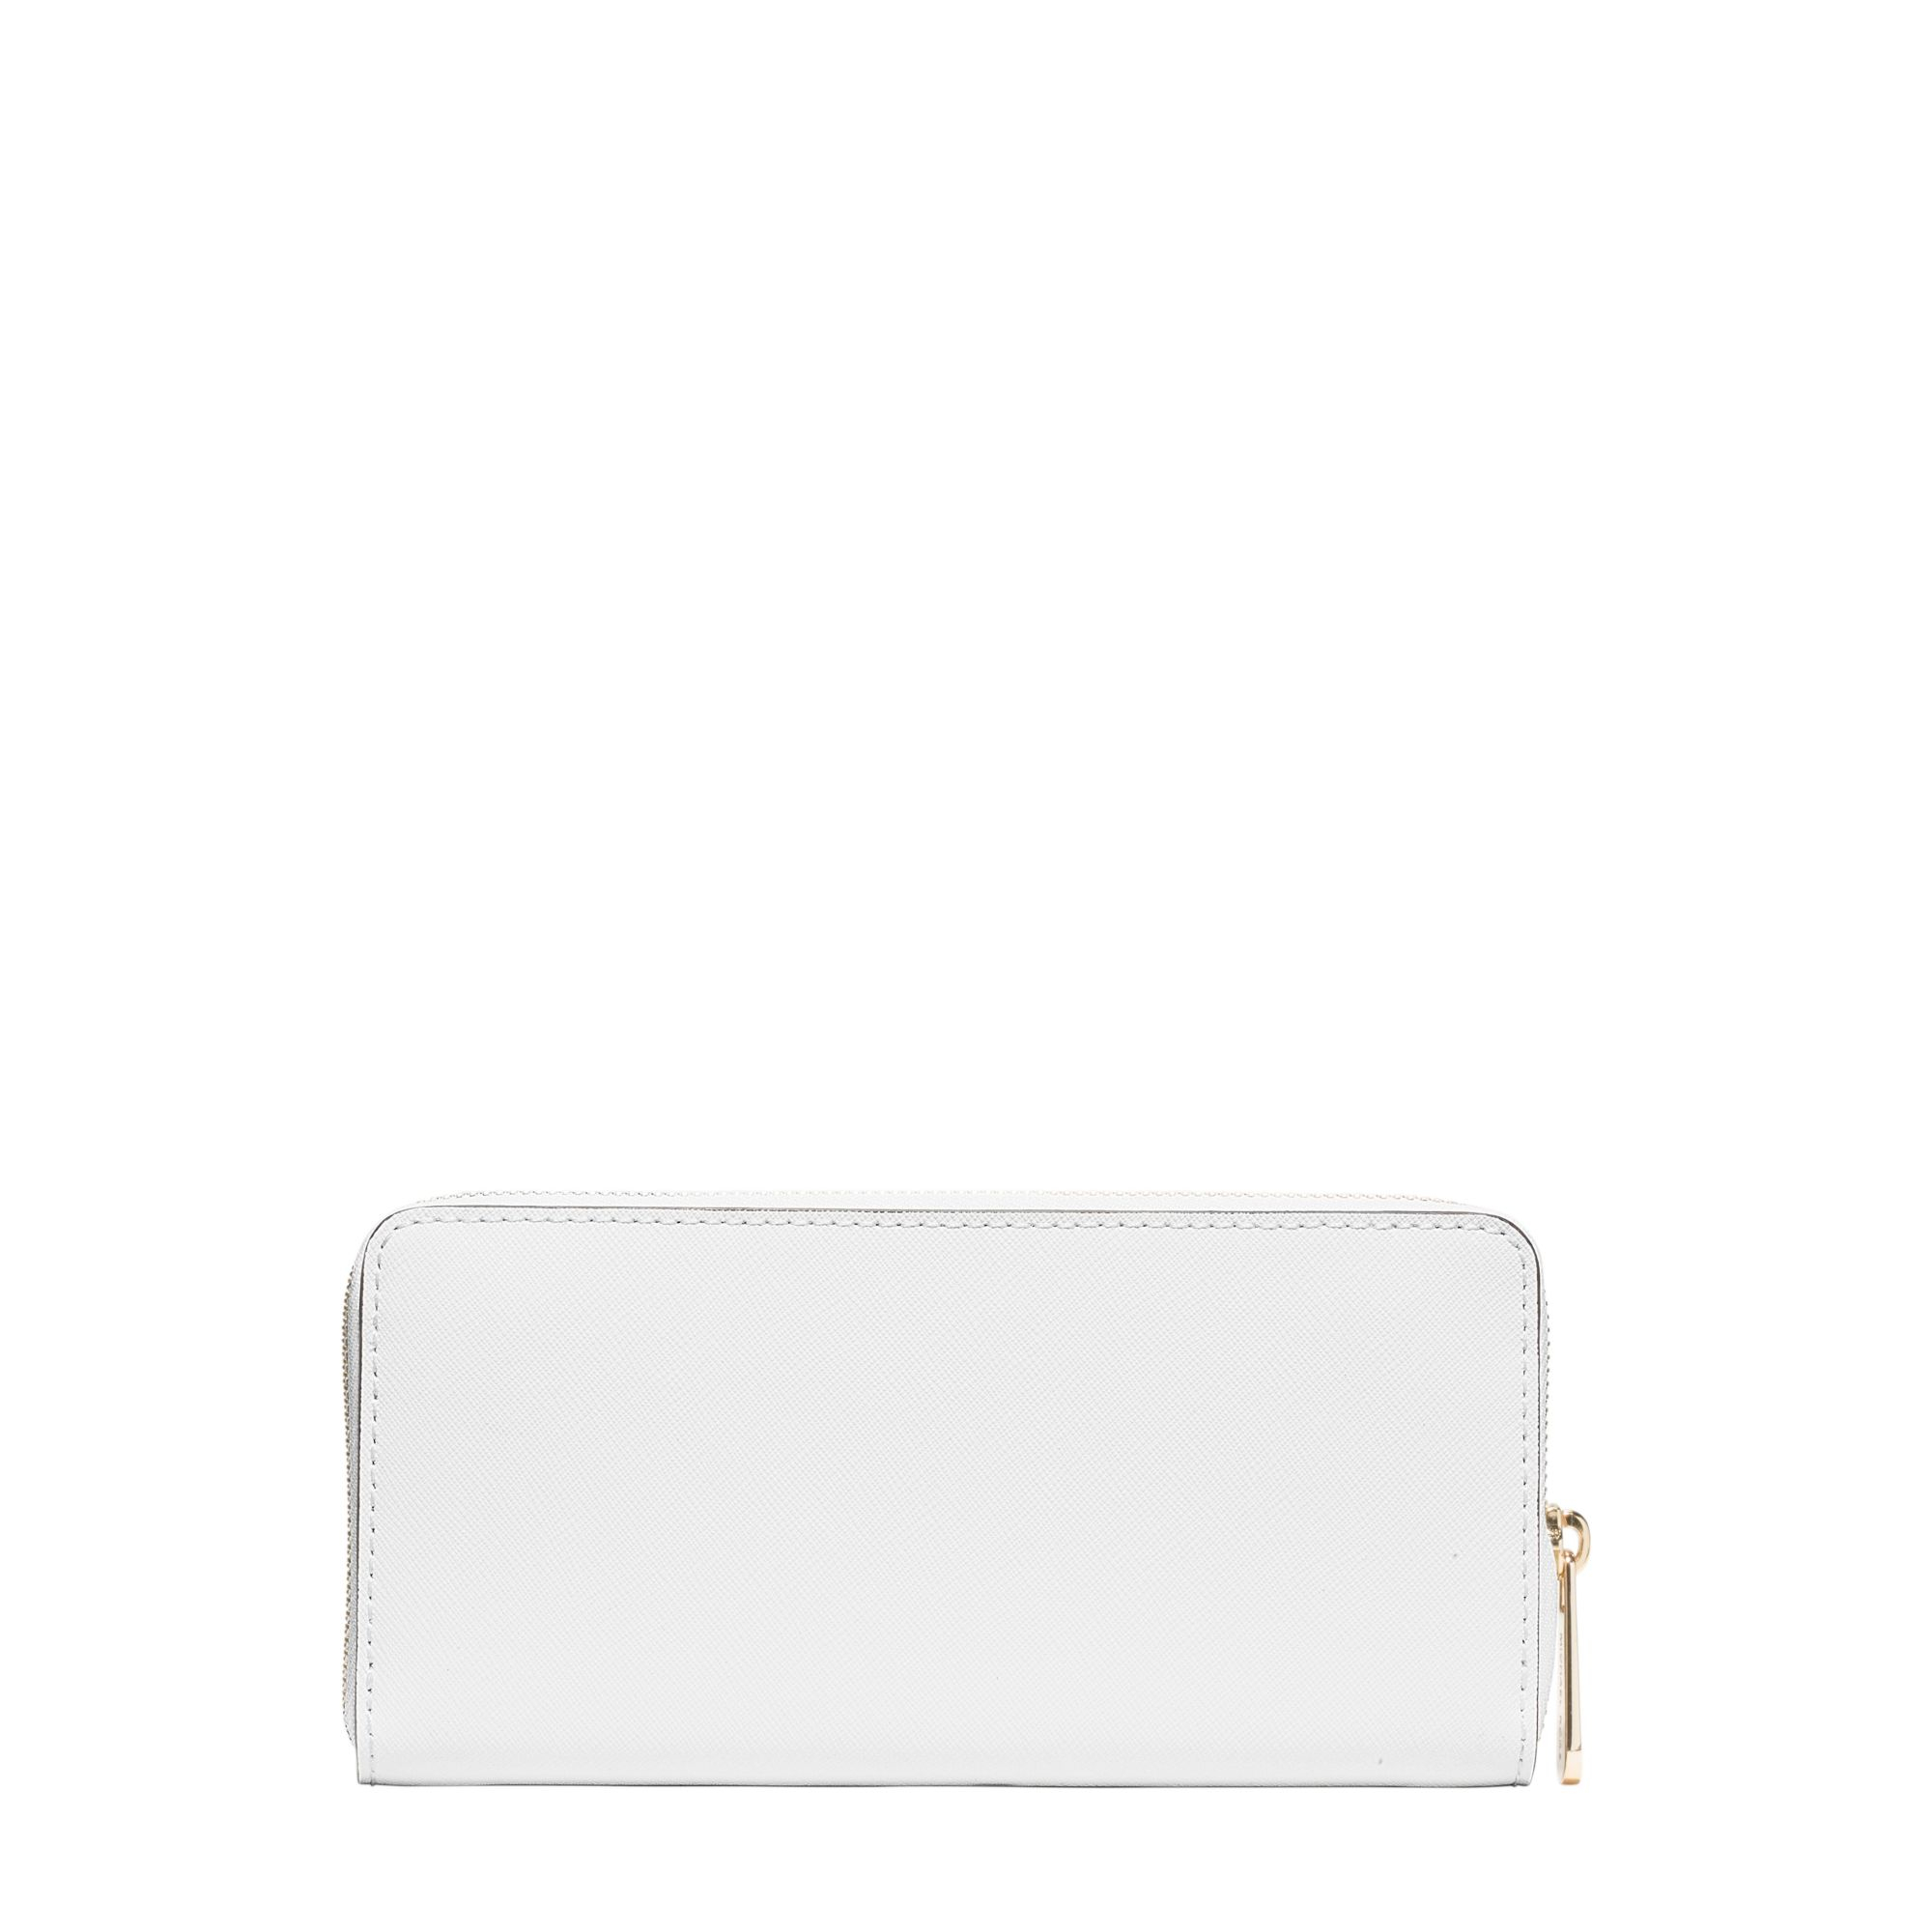 38a18f8fd6bf61 Michael Kors Jet Set Travel Saffiano Leather Continental Wallet in ...